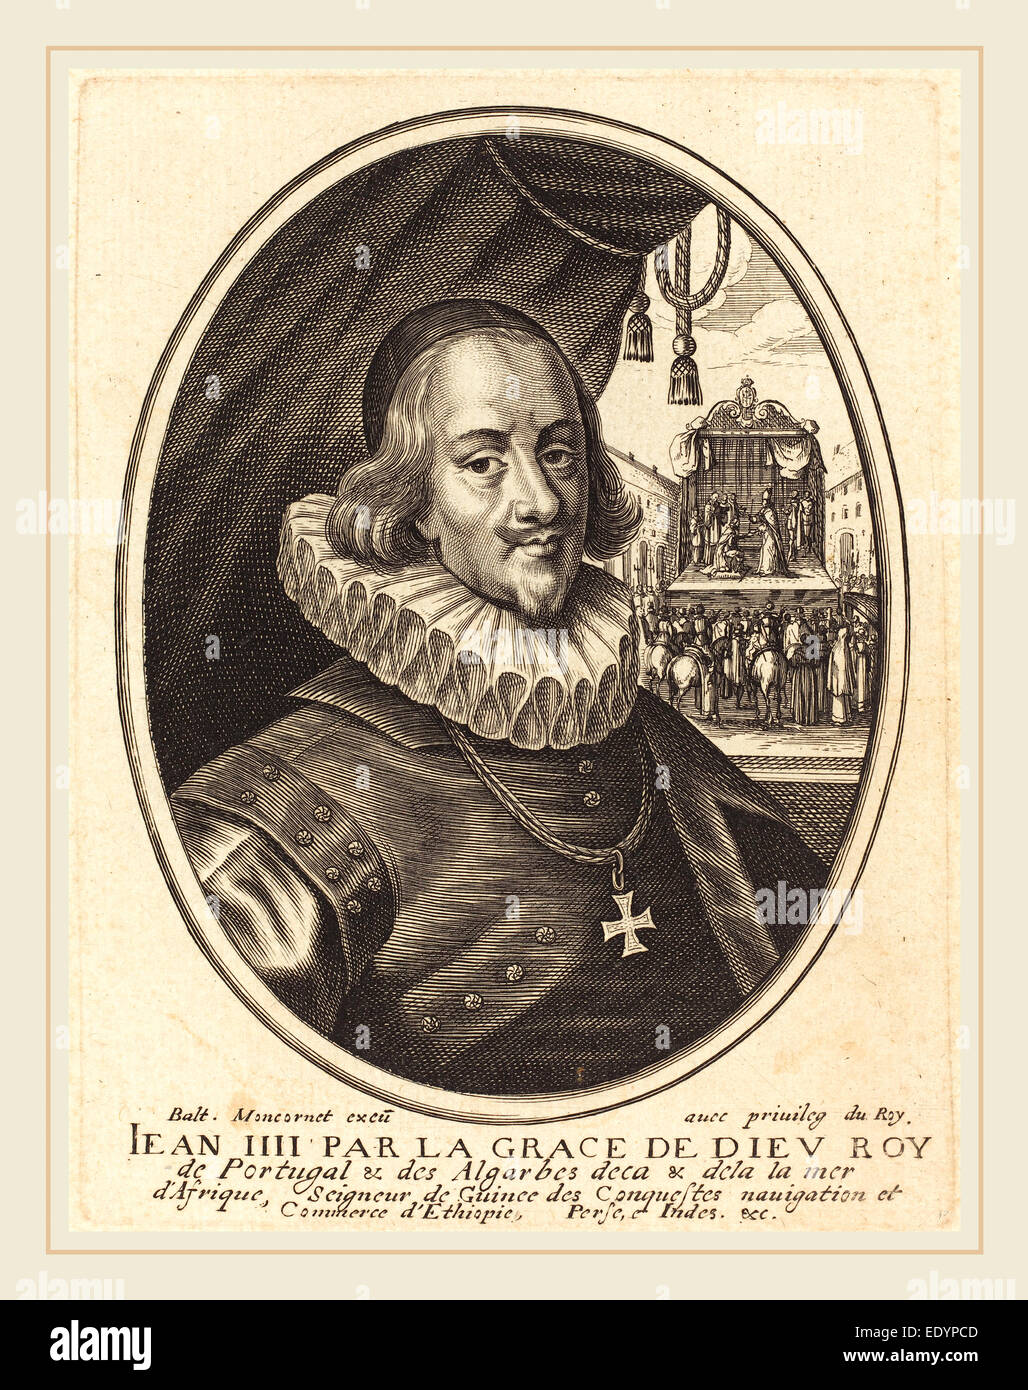 Balthasar Moncornet, French (c. 1600-1668), Jean IV, Duke of Bragance, engraving on laid paper - Stock Image